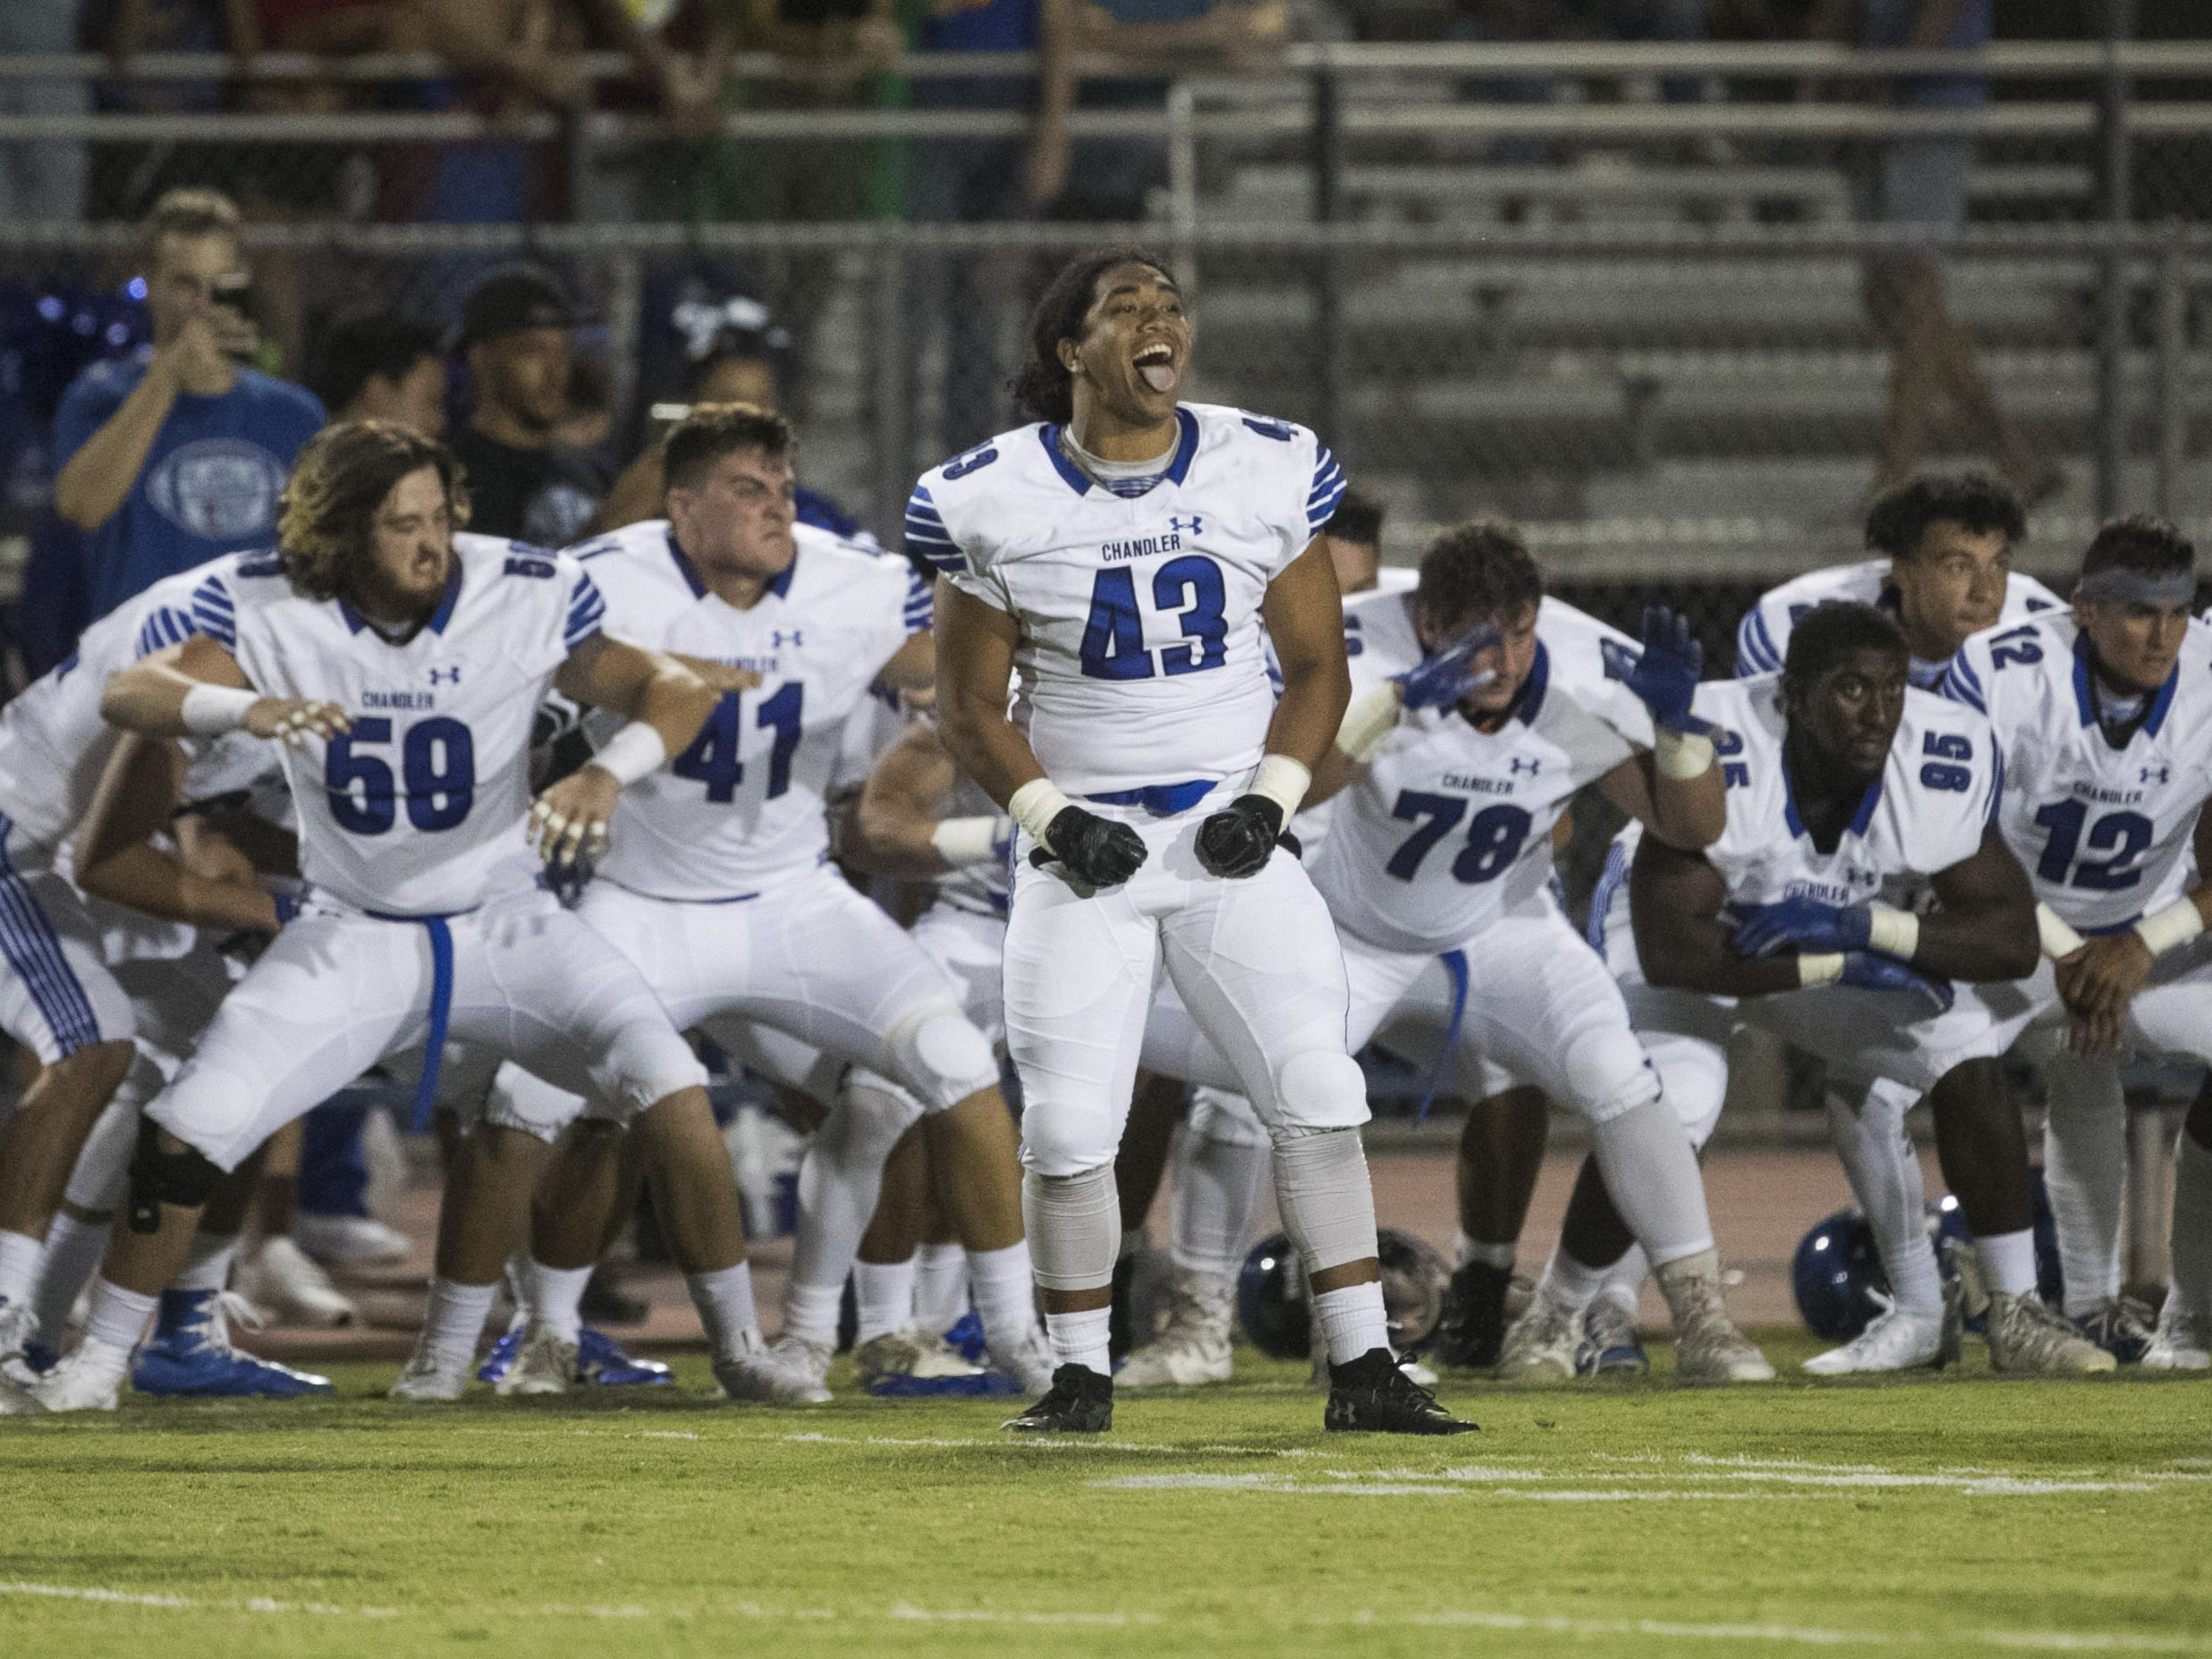 Chandler's Javan Ah Quin (43) sticks out his tongue as the team performs a 'hake' dance before a game at Perry High School in Gilbert, Ariz. on Sept. 28, 2018.  #azhsfb